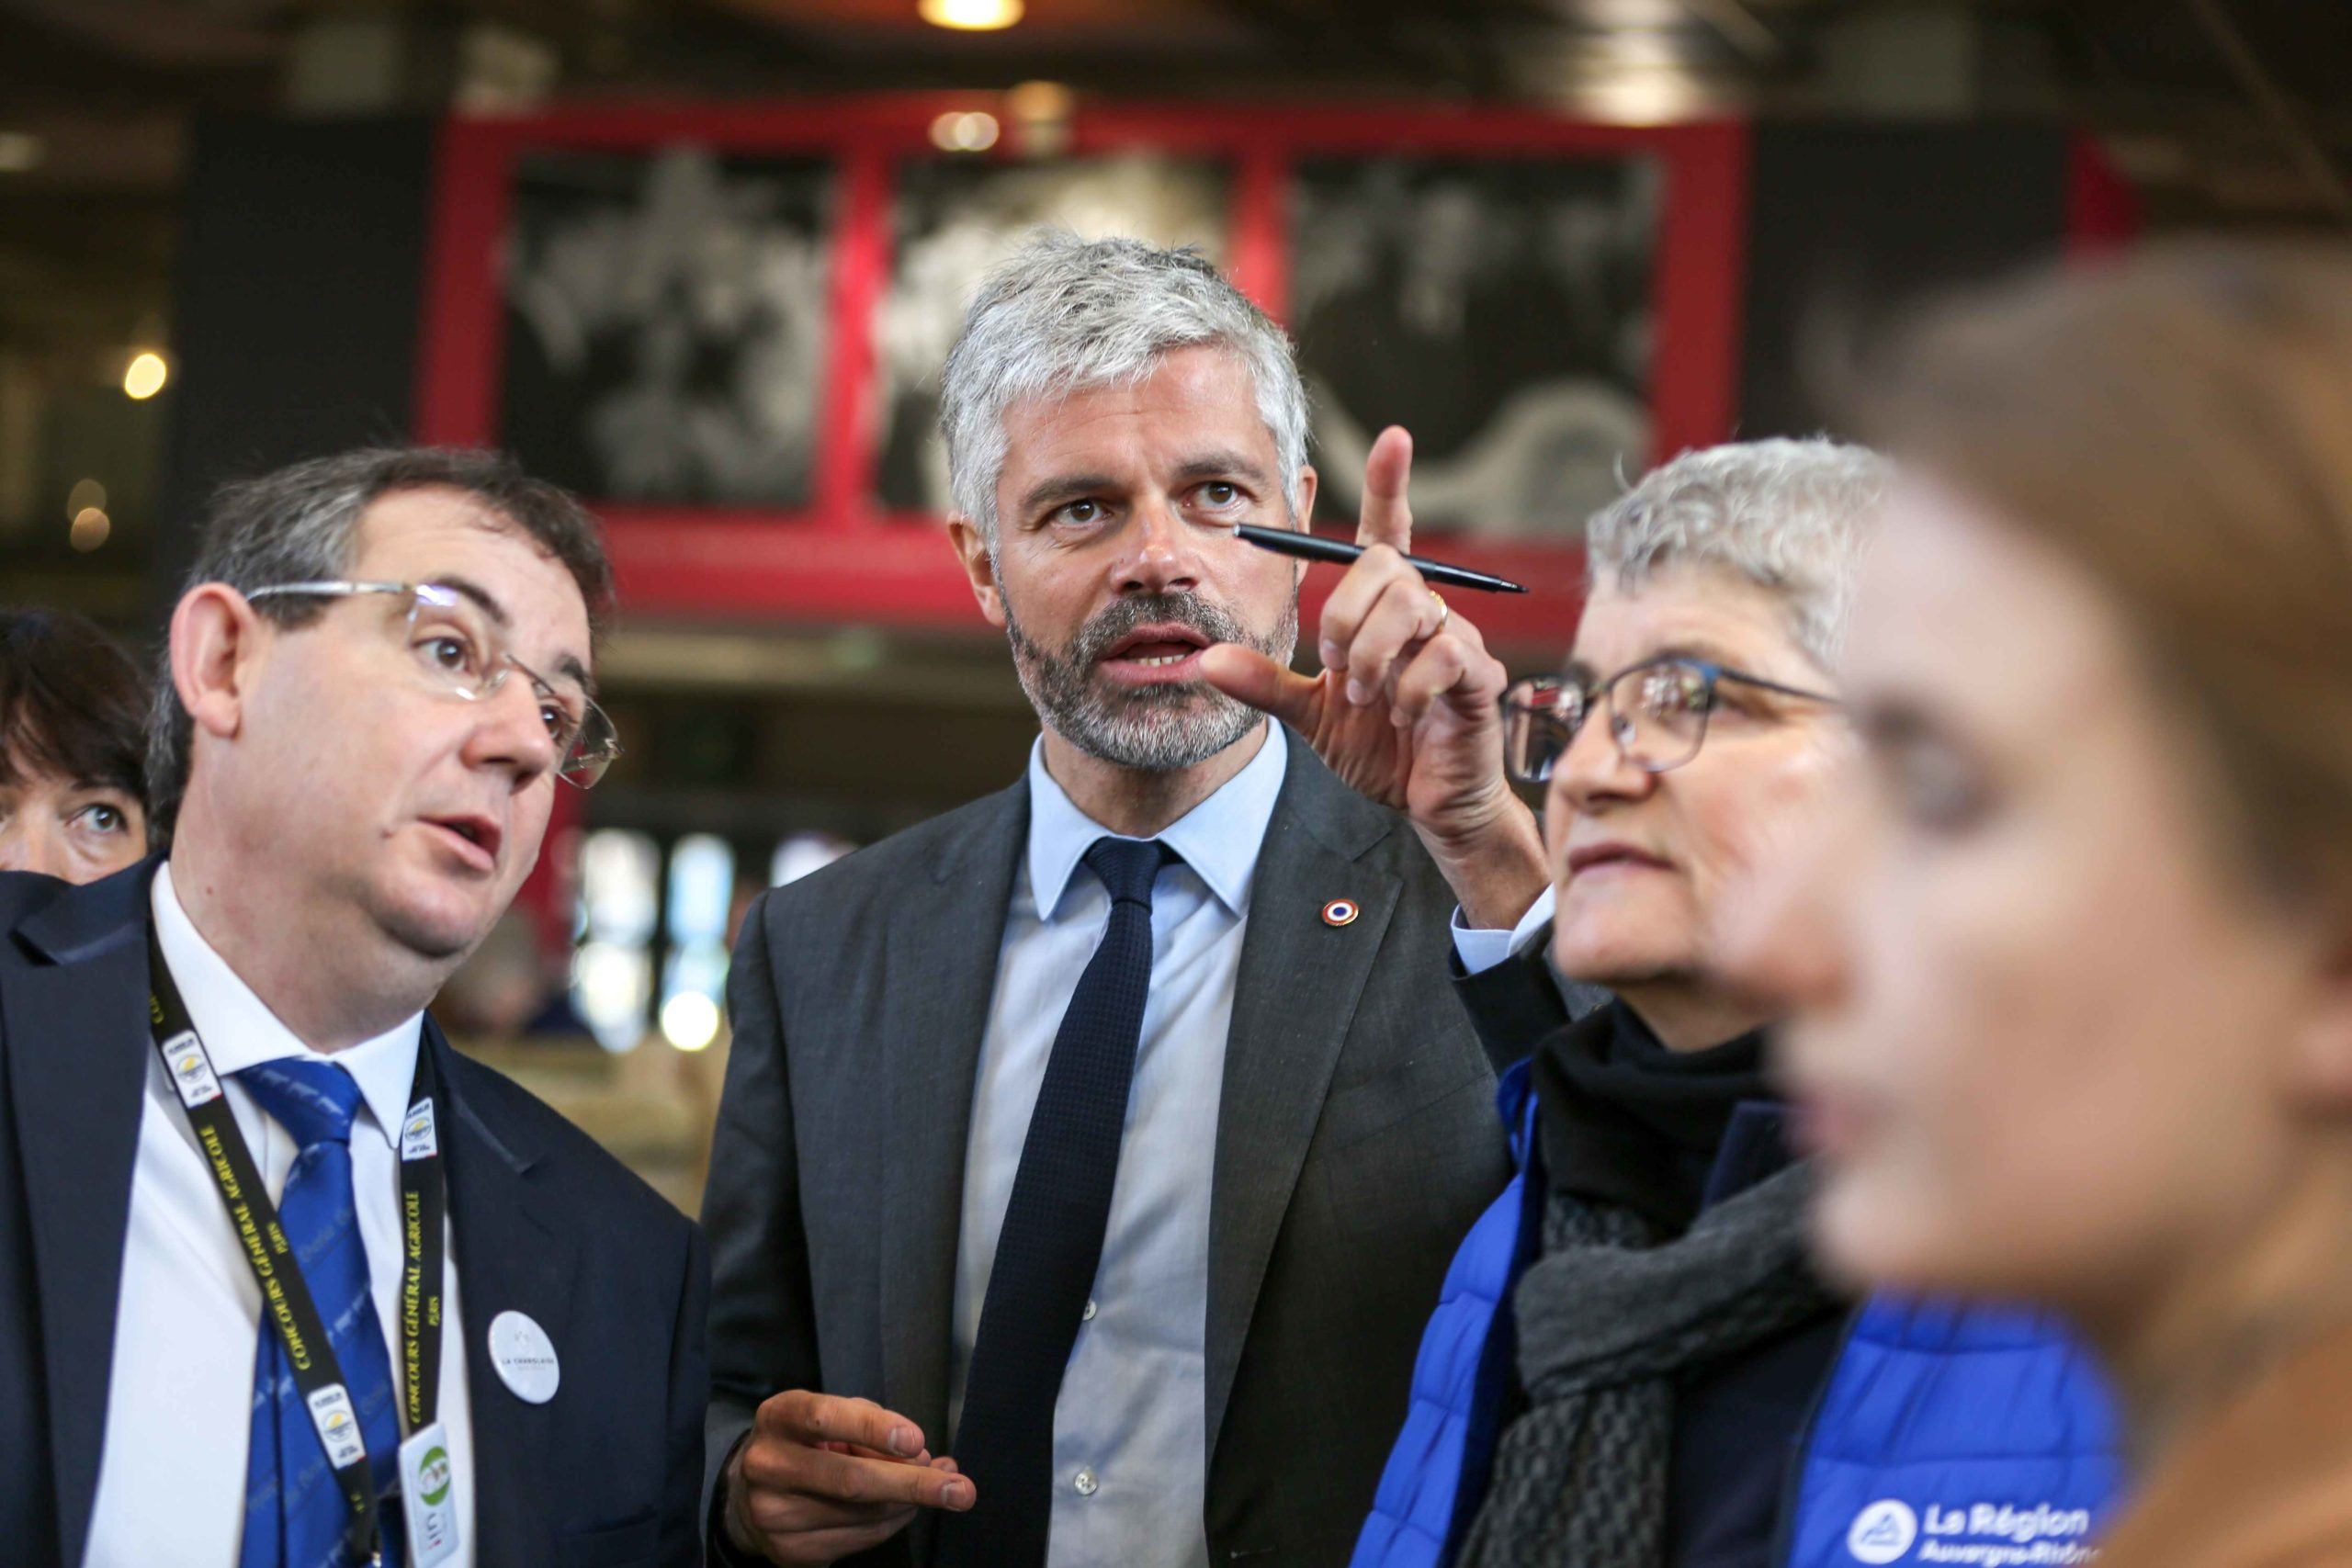 President of France's administrative region Auvergne-Rhone-Alpes Laurent Wauquiez (C) visits the international Agriculture Fair in Paris on February 25, 2020.